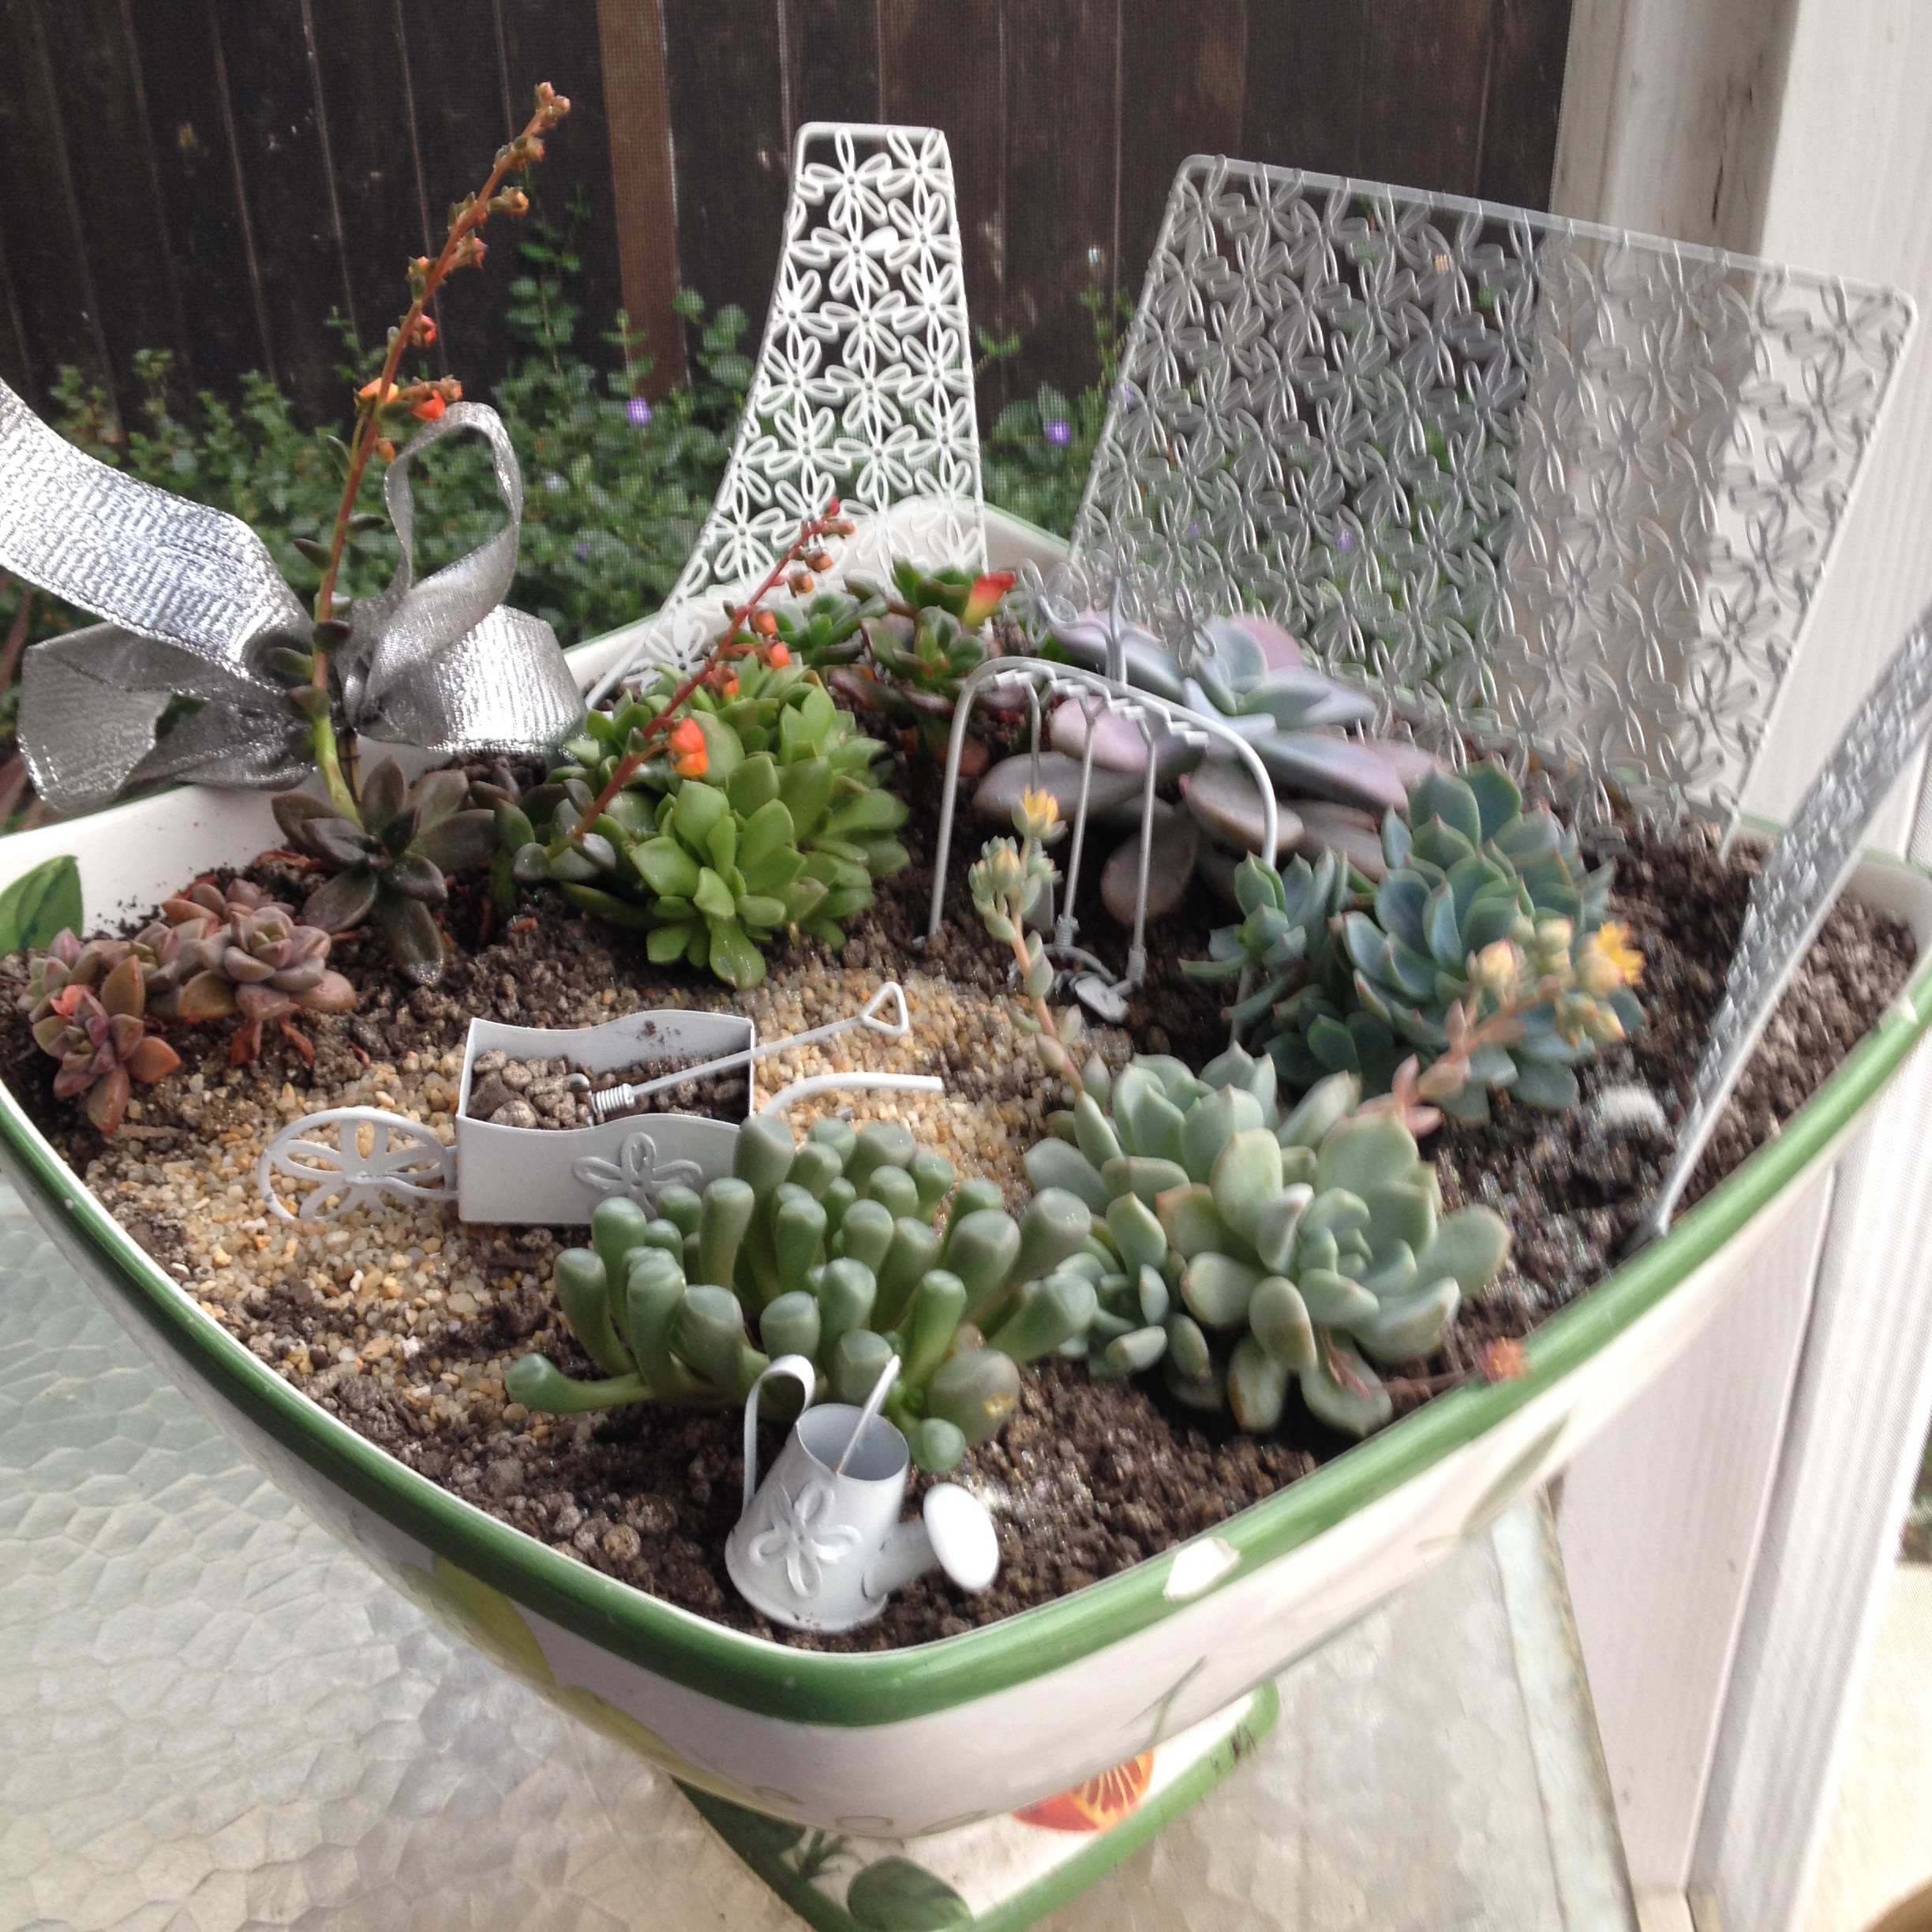 Fairy Garden for a Kid to Build